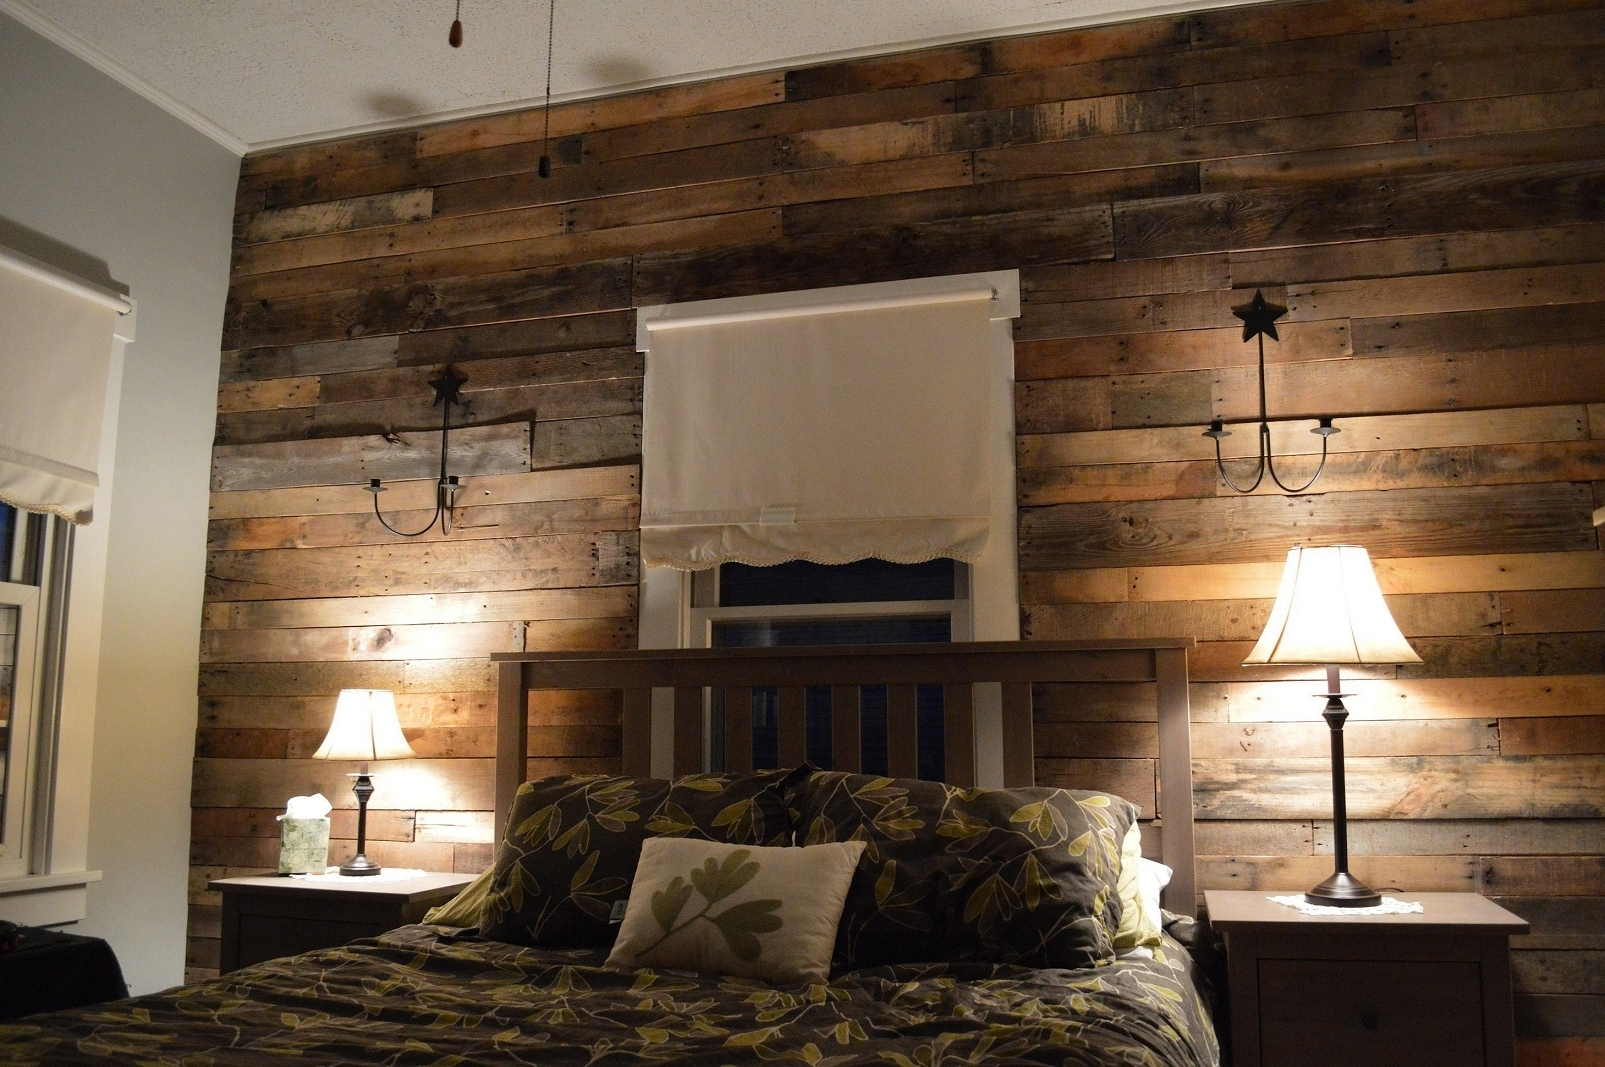 Newest Wood Pallet Wall For Hotter Home Interior Decor, Wall Decor Home Regarding Wood Pallets Wall Accents (View 7 of 15)